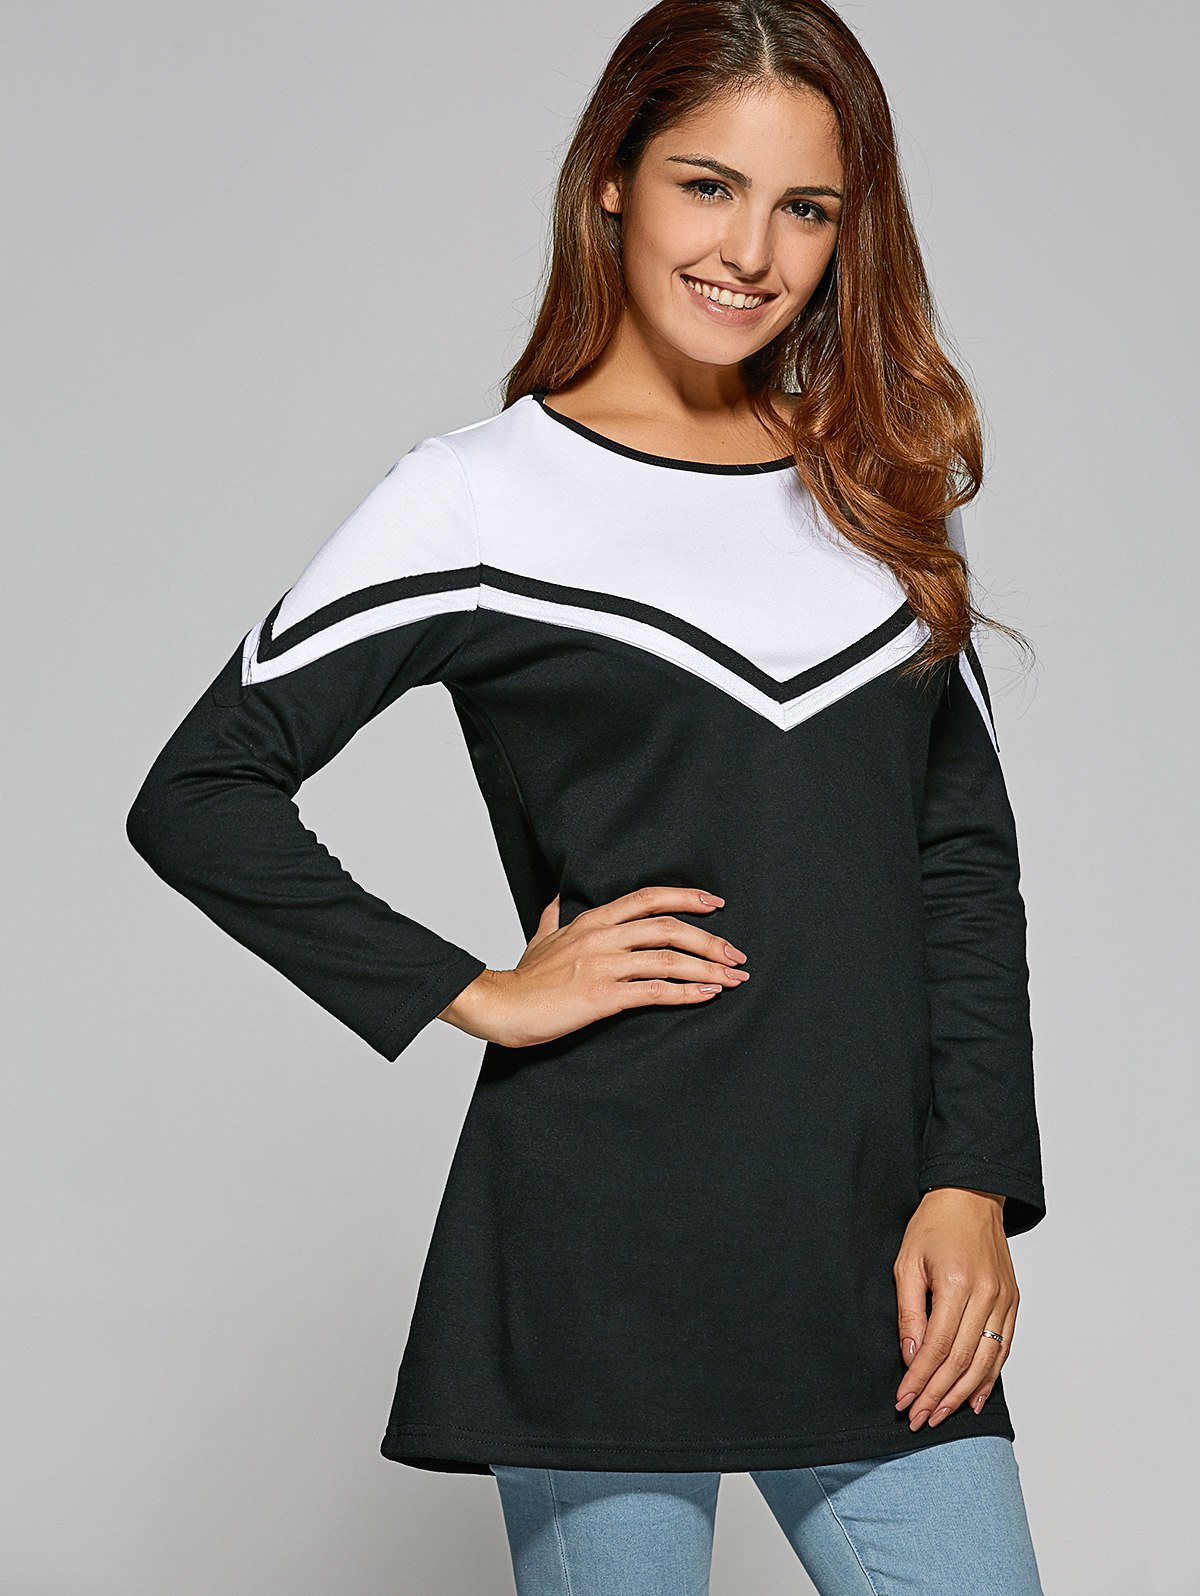 New Zigzag Color Block T-Shirt Dress